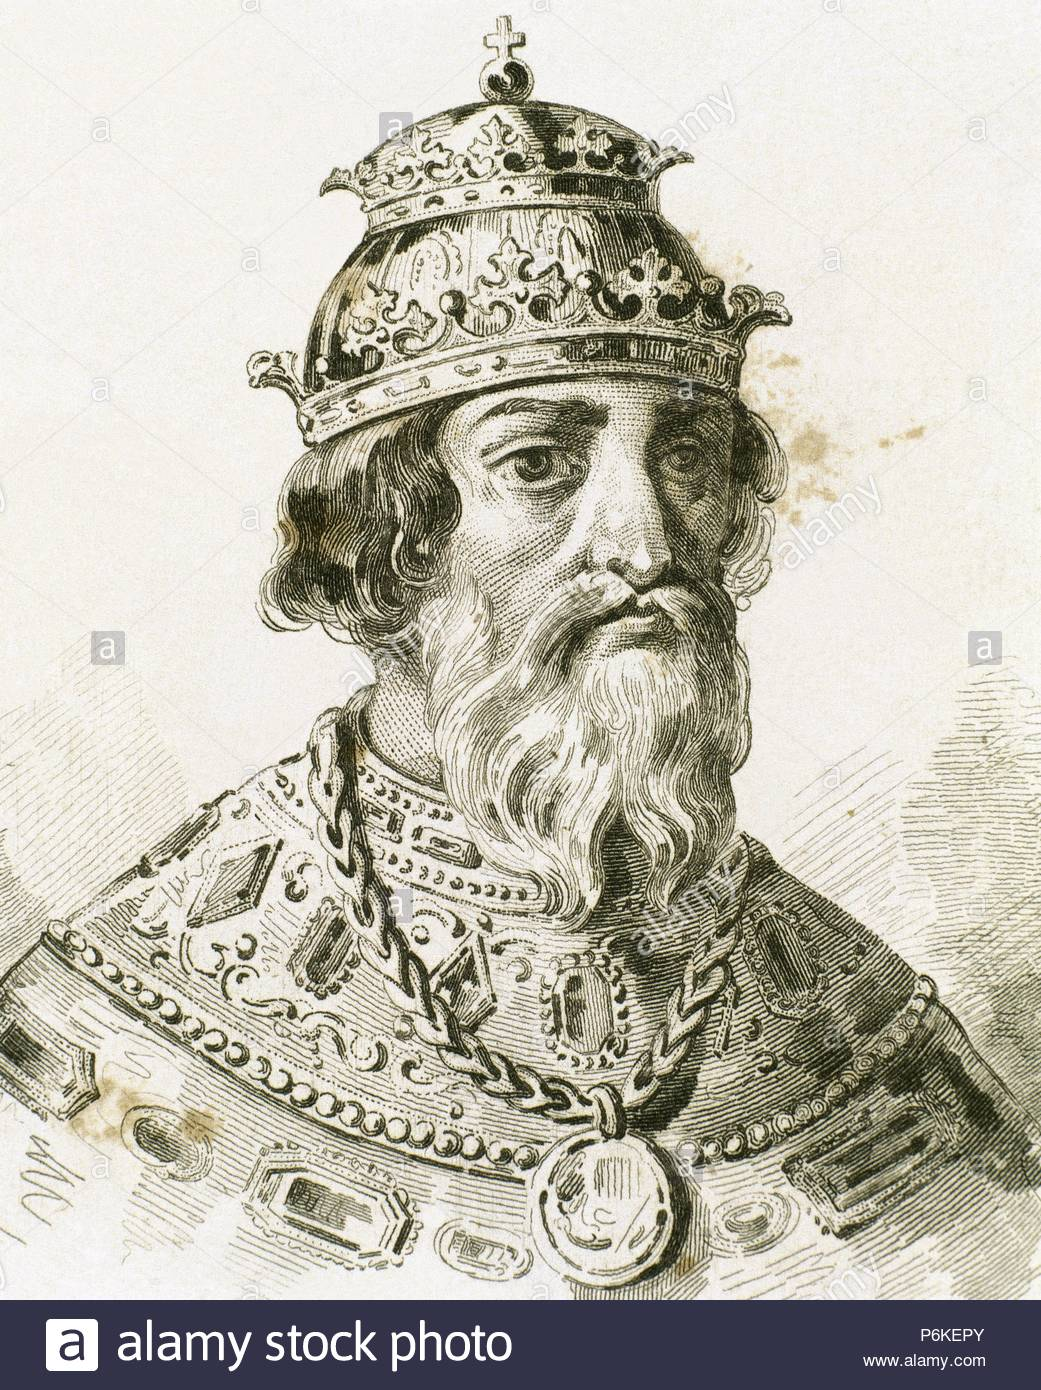 Ivan IV Vasilyevich (1530-1584), known as Ivan the Terrible. Grand Prince of Moscow (1533-1547) and Tsar of All the Russias (1547-1584). Portrait. Engraving. - Stock Image